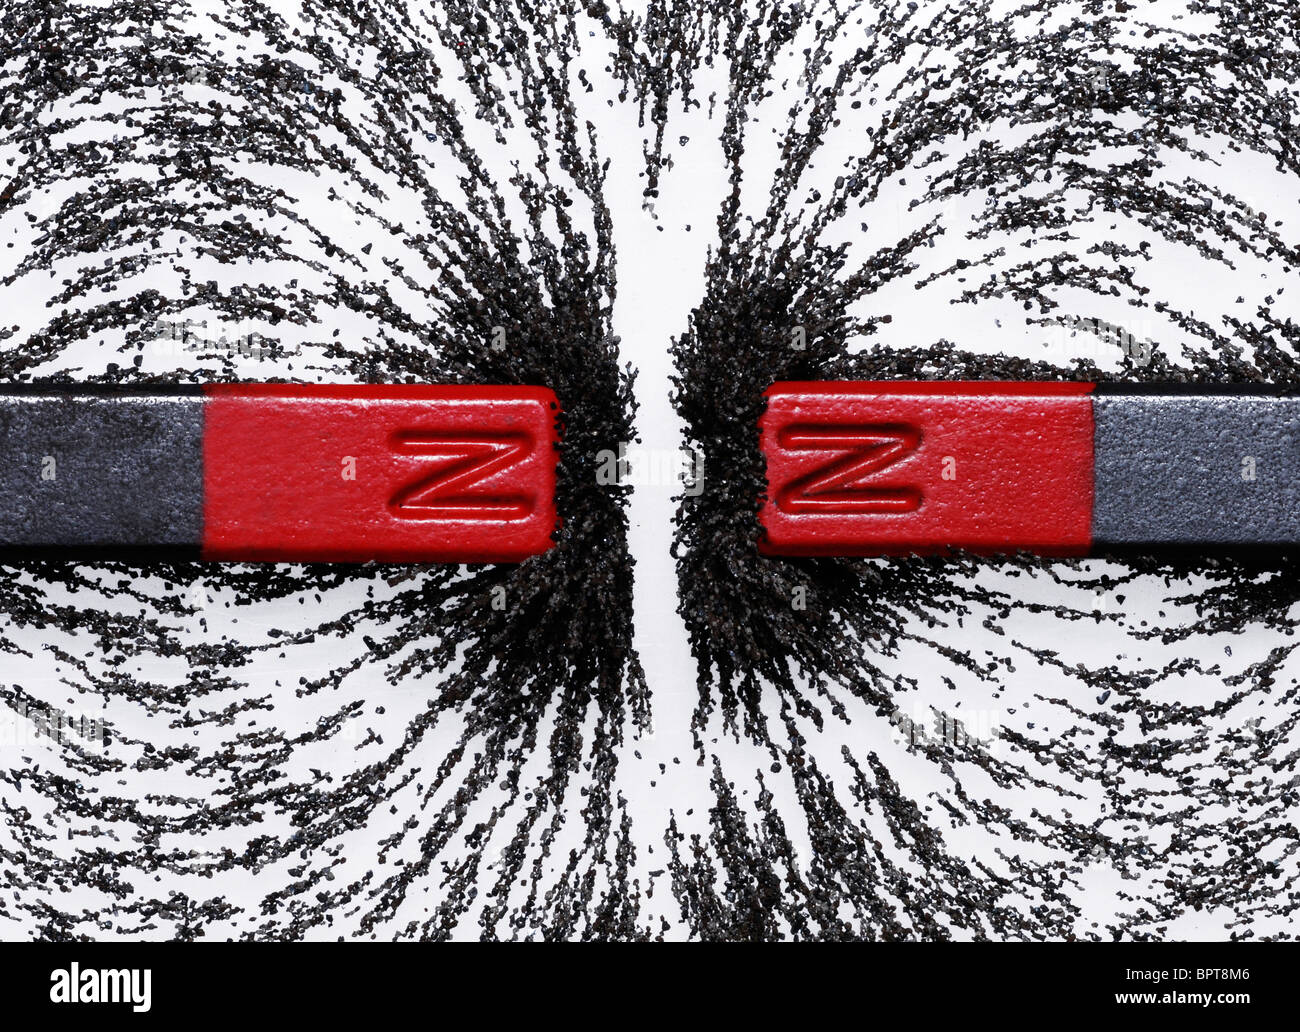 Bar magnets with iron filings showing magnetic repulsion between similar poles - Stock Image